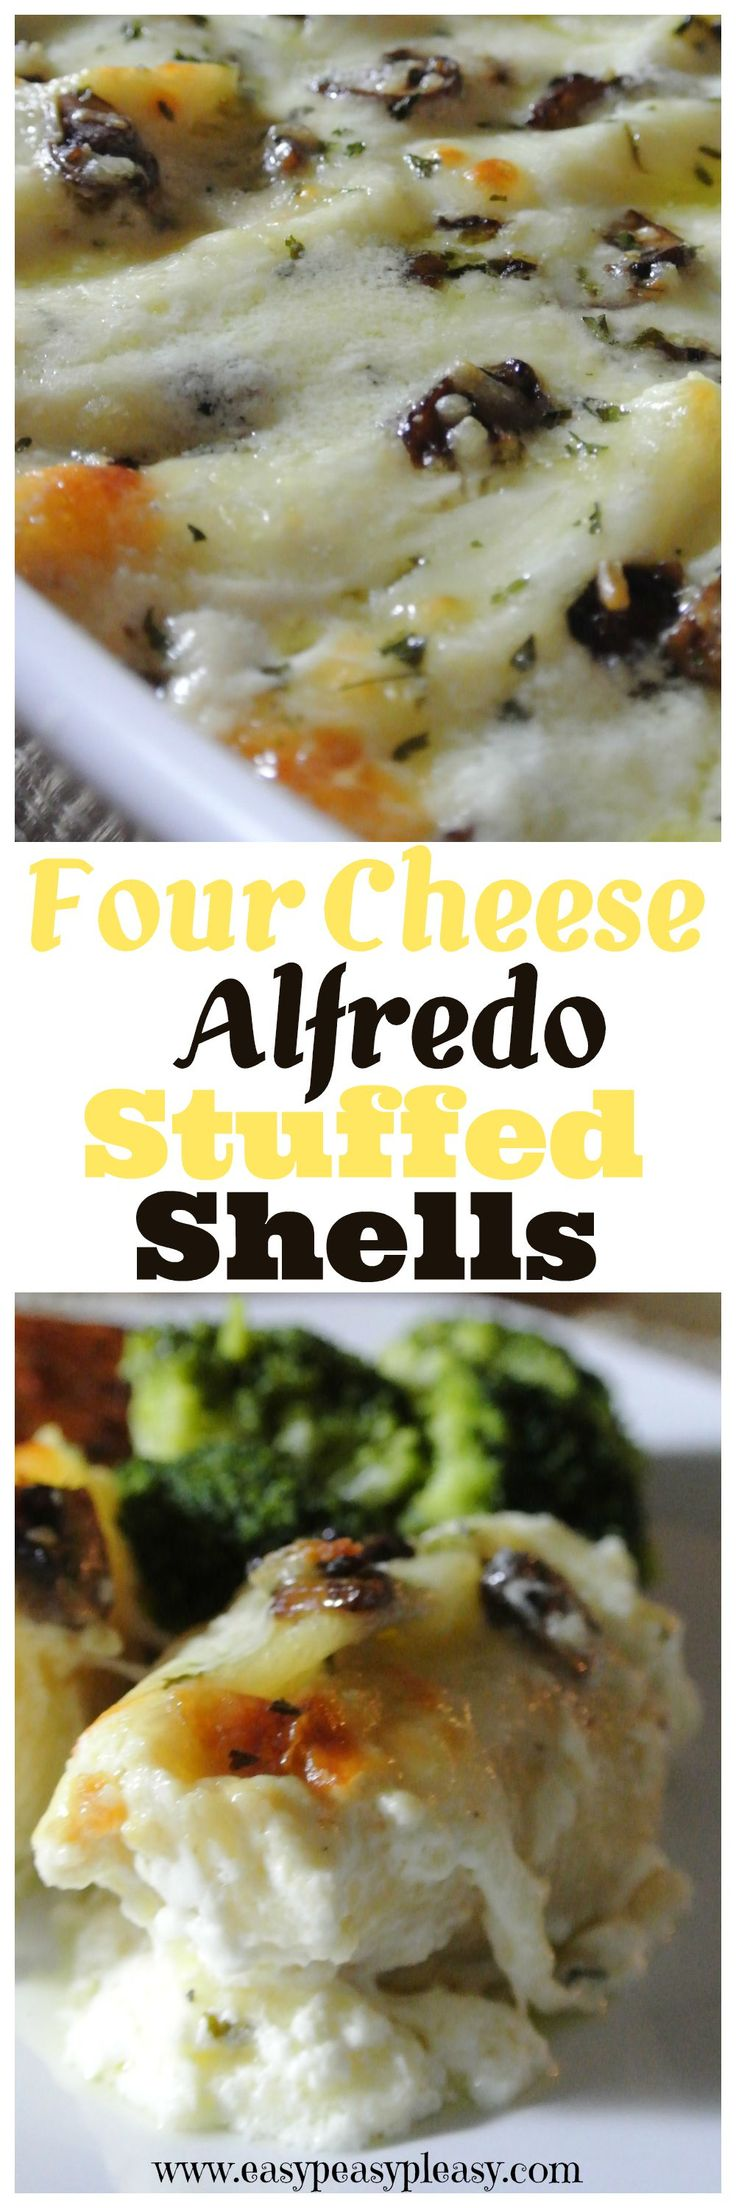 This is one of my all time favorite dishes! The Alfredo sauce is super easy and so delicious over the four cheese stuffed shells. This dish is a great freezer meal option!